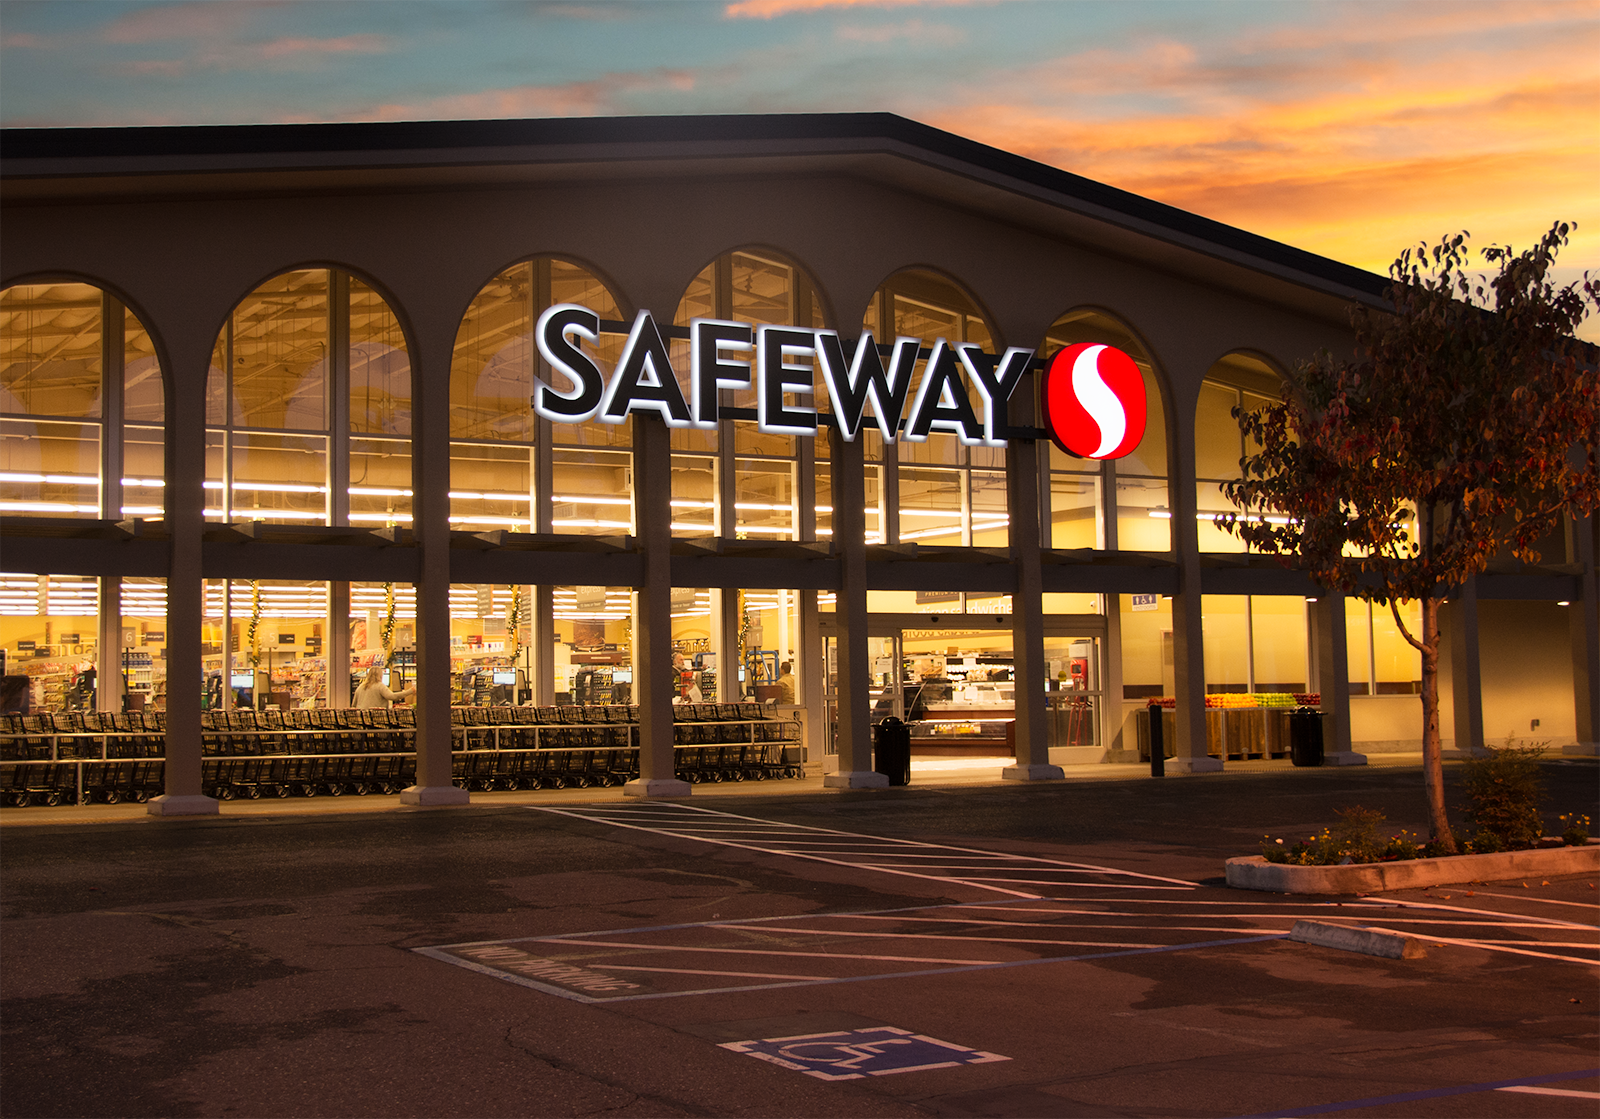 Safeway Store Front Picture - 3830 Georgia Ave in Washington DC